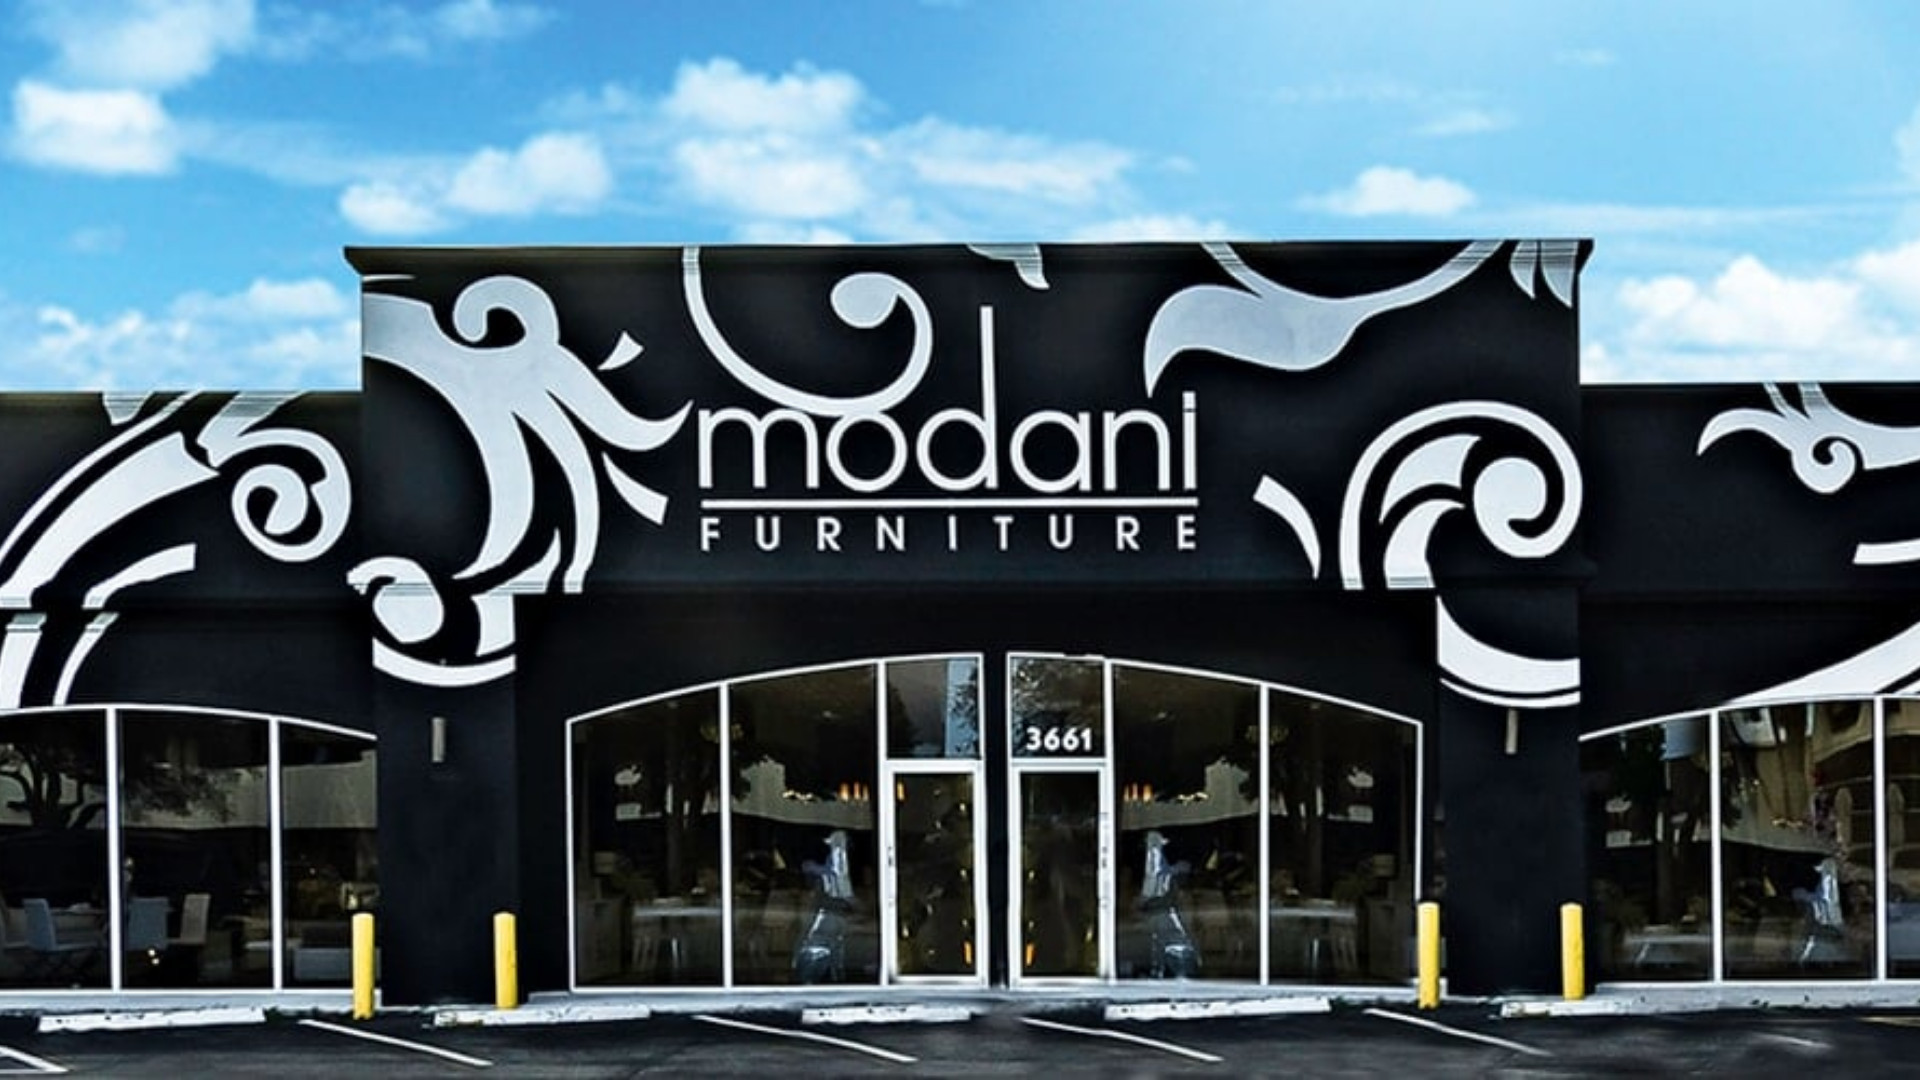 Fort Lauderdale, FL reviews | Furniture Stores at 3661 N Federal Hwy - Fort Lauderdale FL